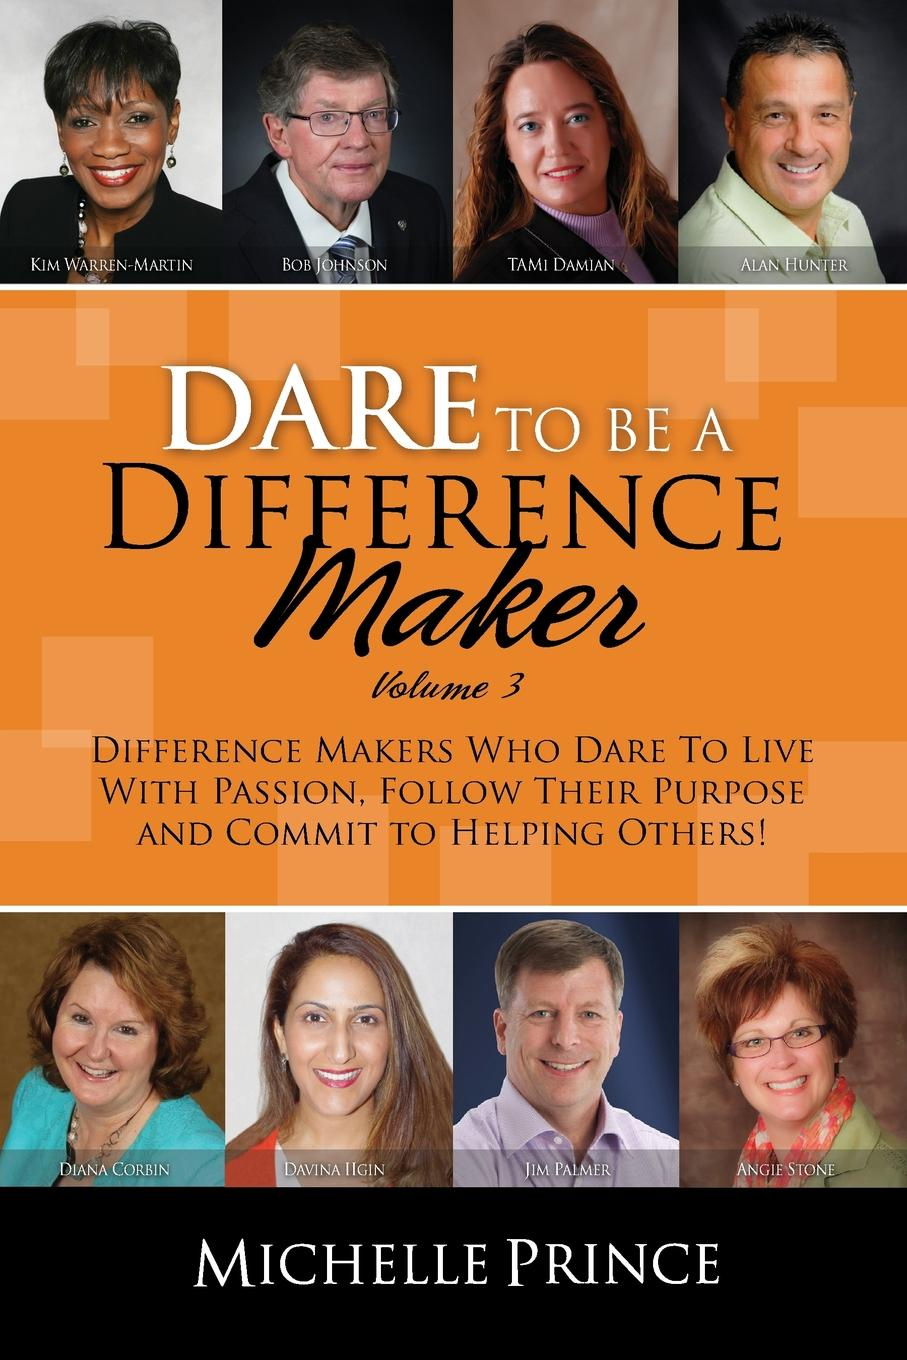 Michelle Prince Dare To Be A Difference Maker Volume 3 paper crafts a maker